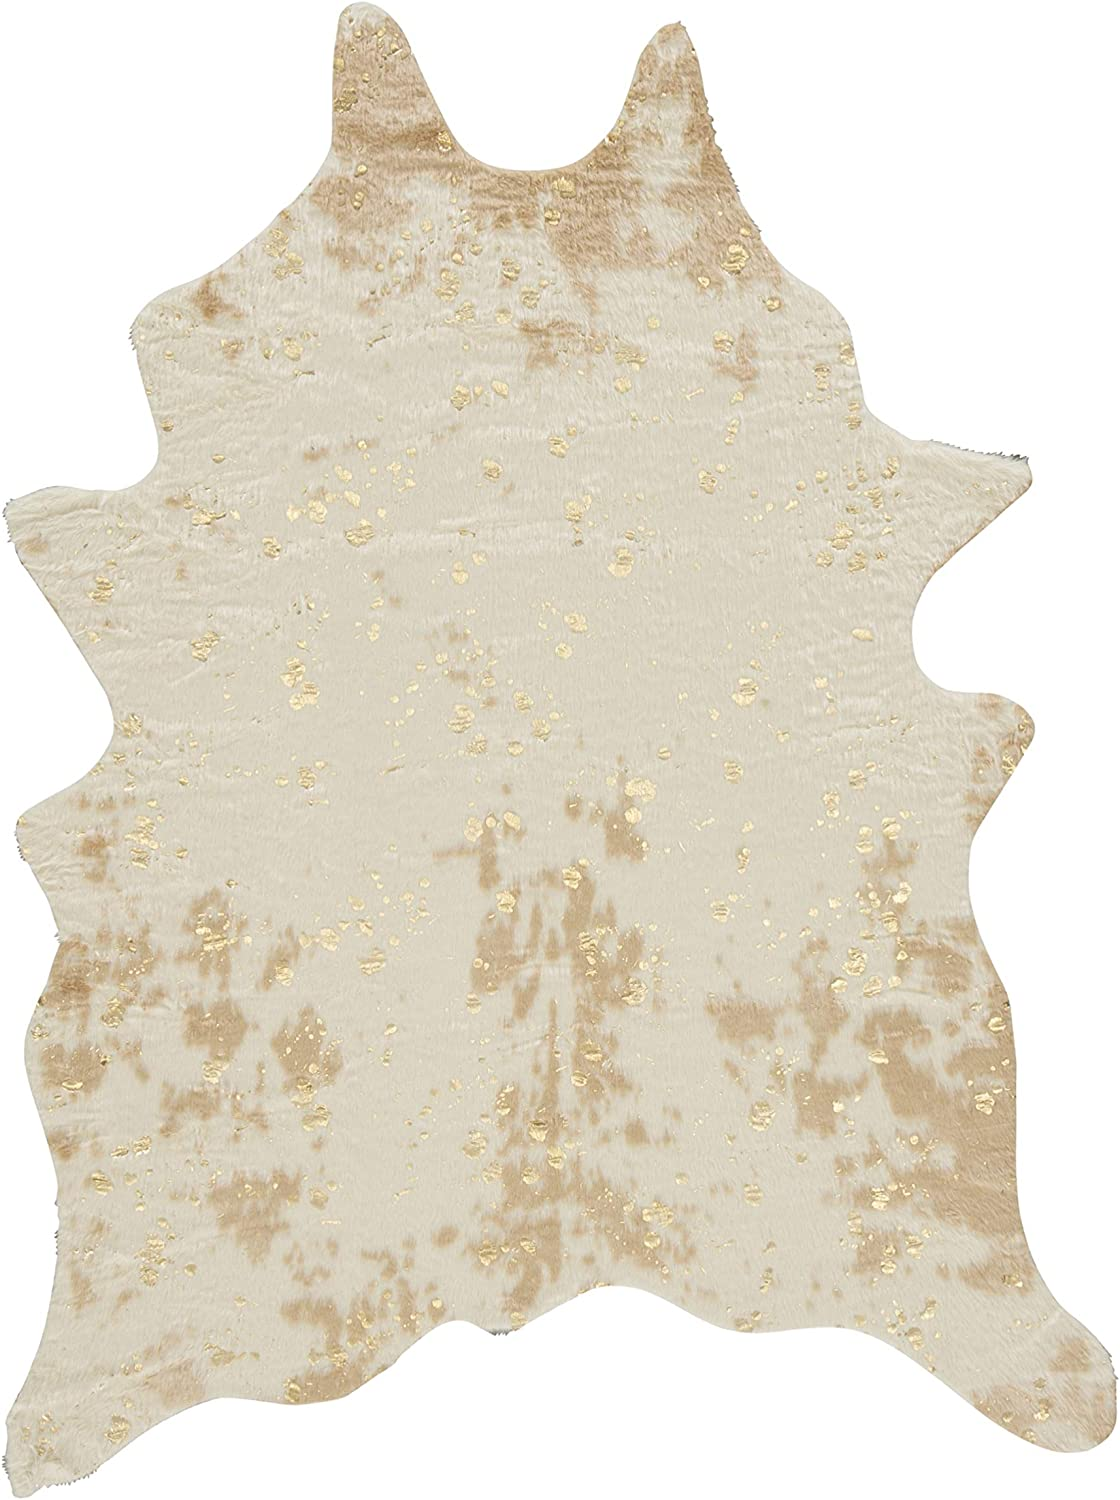 Signature Design By Ashley Jaxith Accent Rug Faux Cowhide Brown Home Kitchen